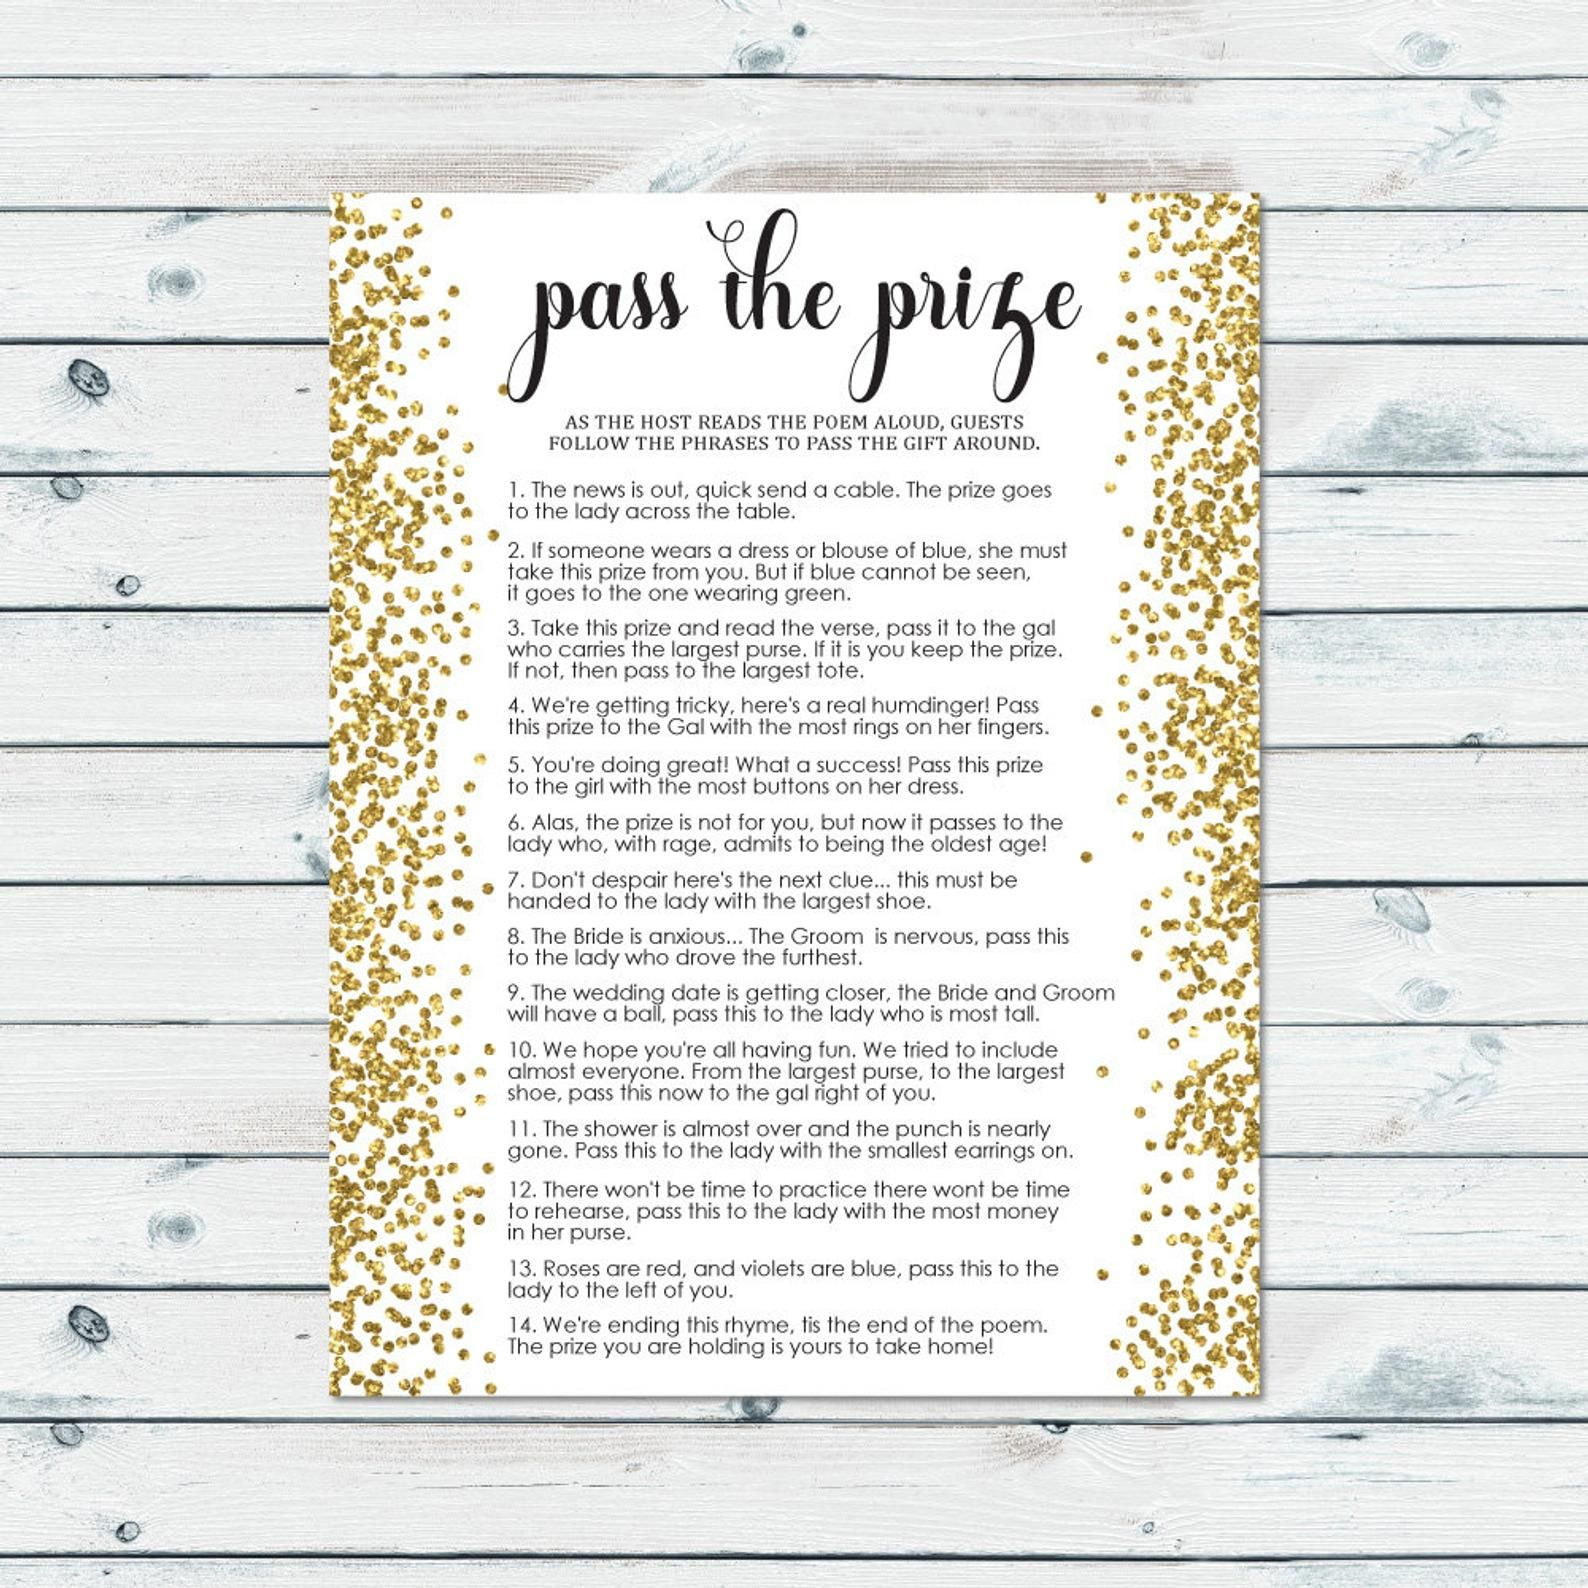 graphic about Baby Shower Pass the Prize Rhyme Printable known as P the prize bridal shower activity p the parcel rhyme